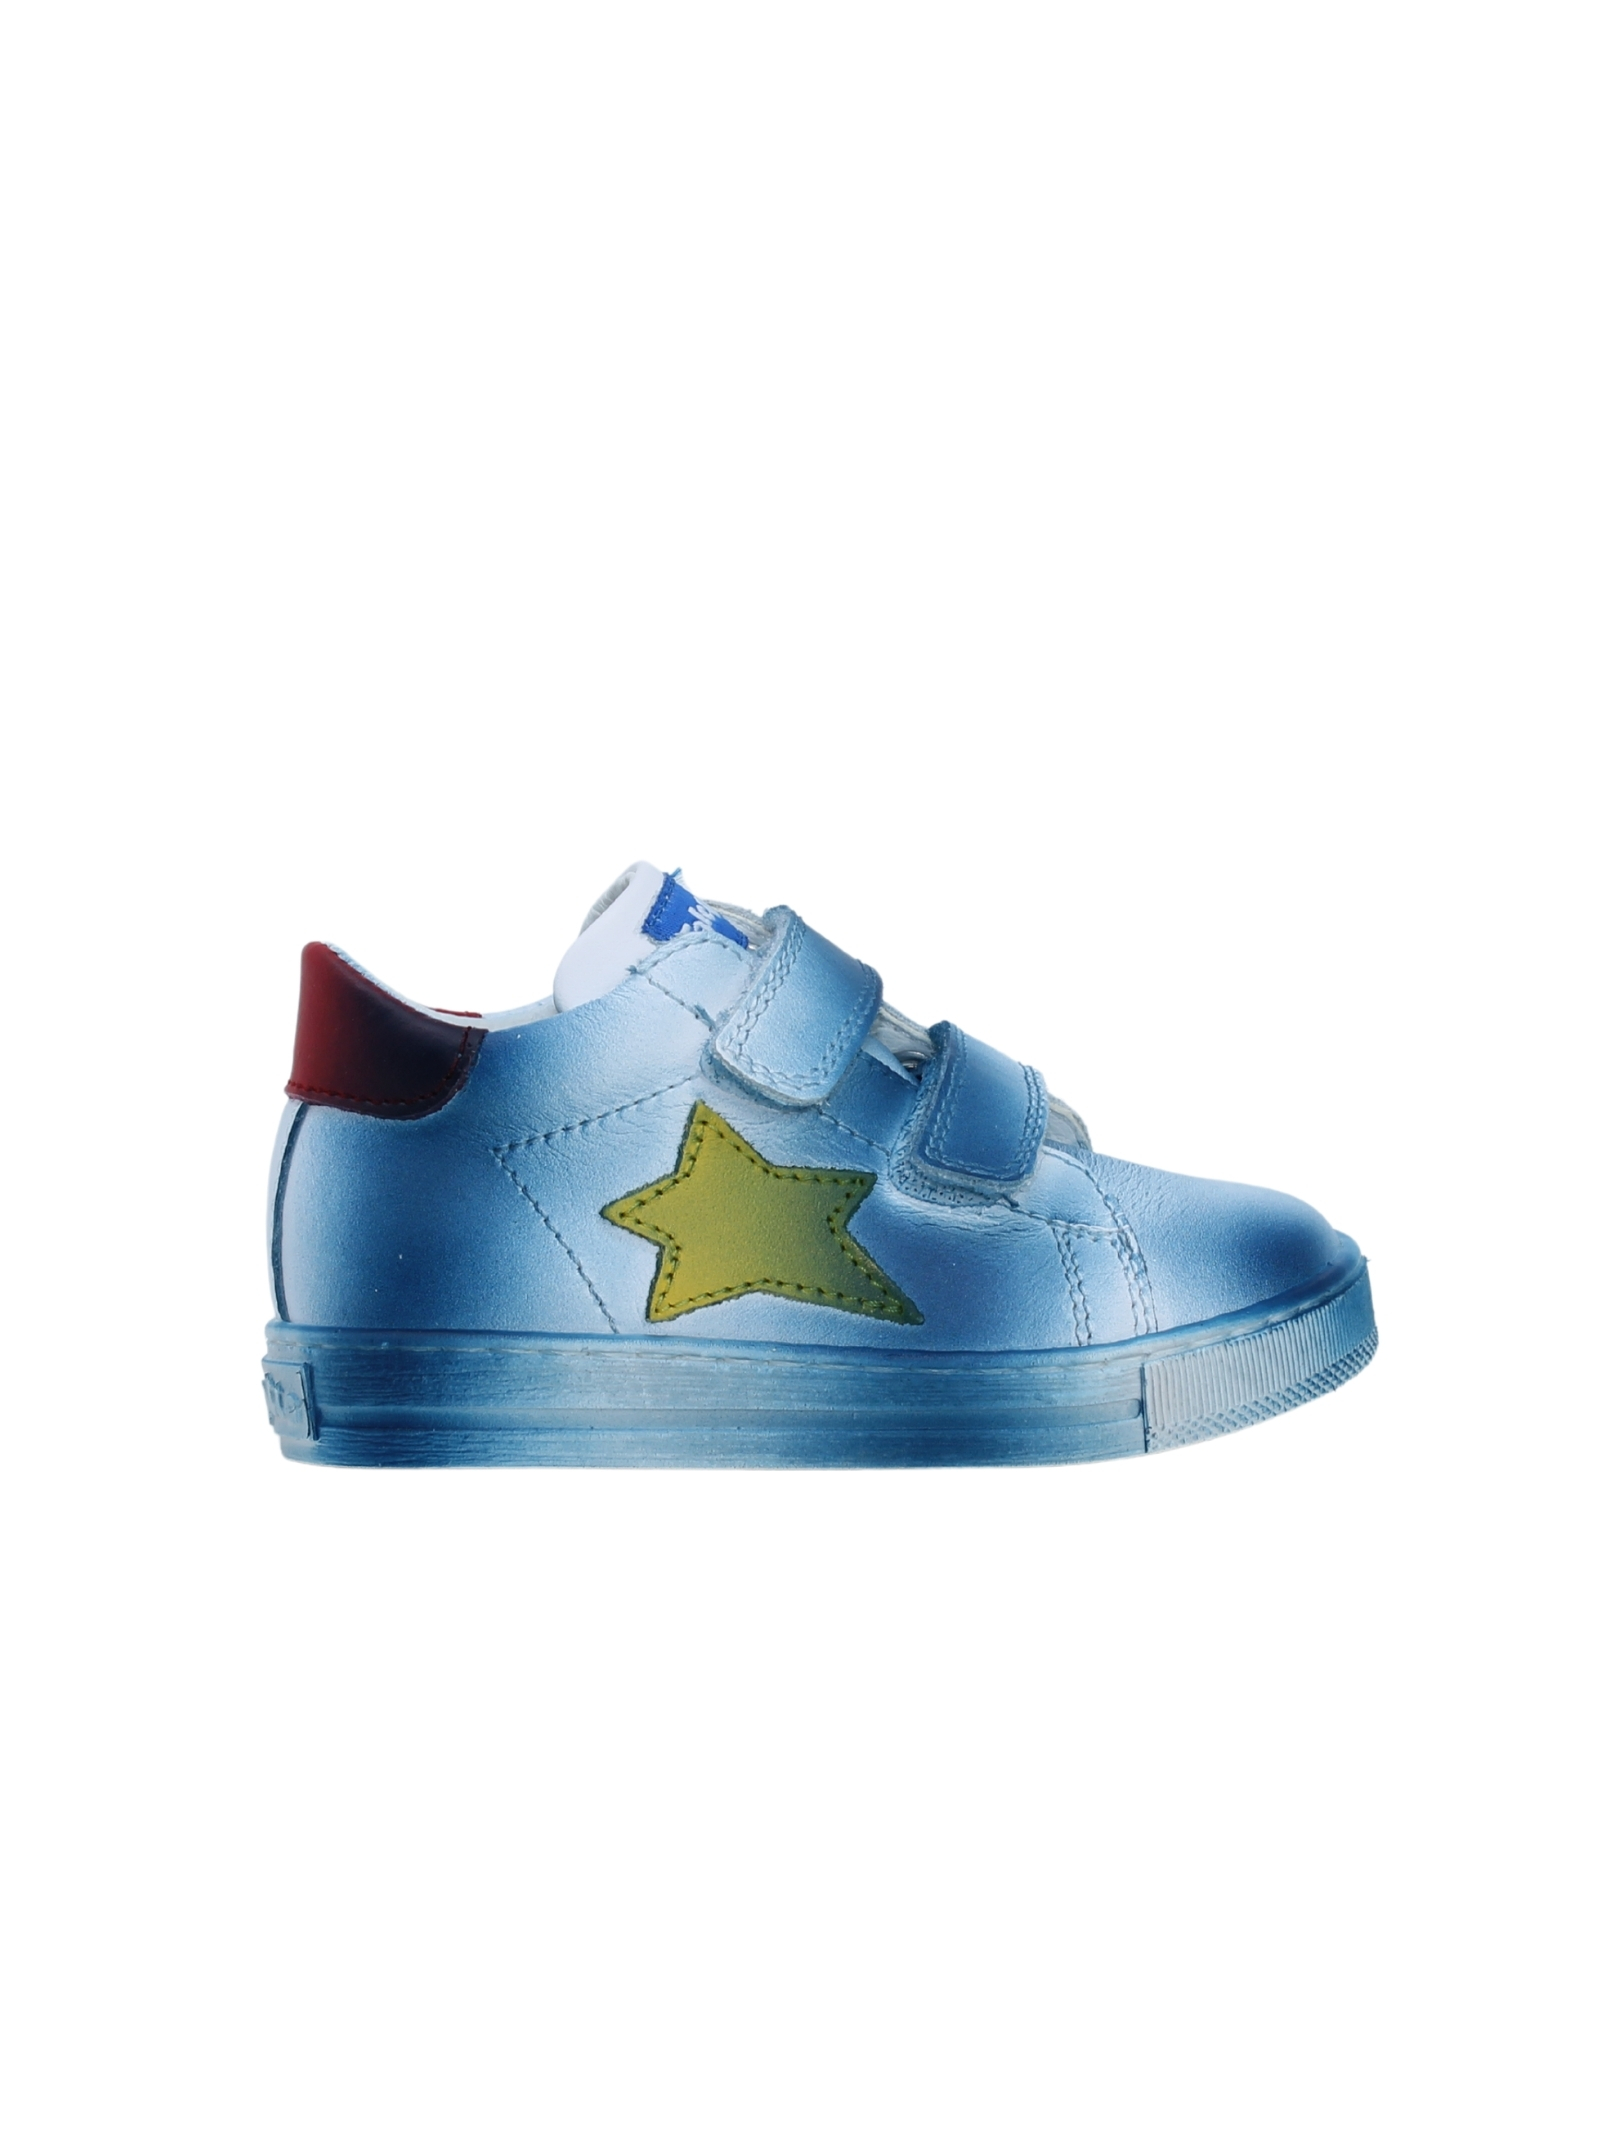 FALCOTTO | Sneakers | 20153501N06